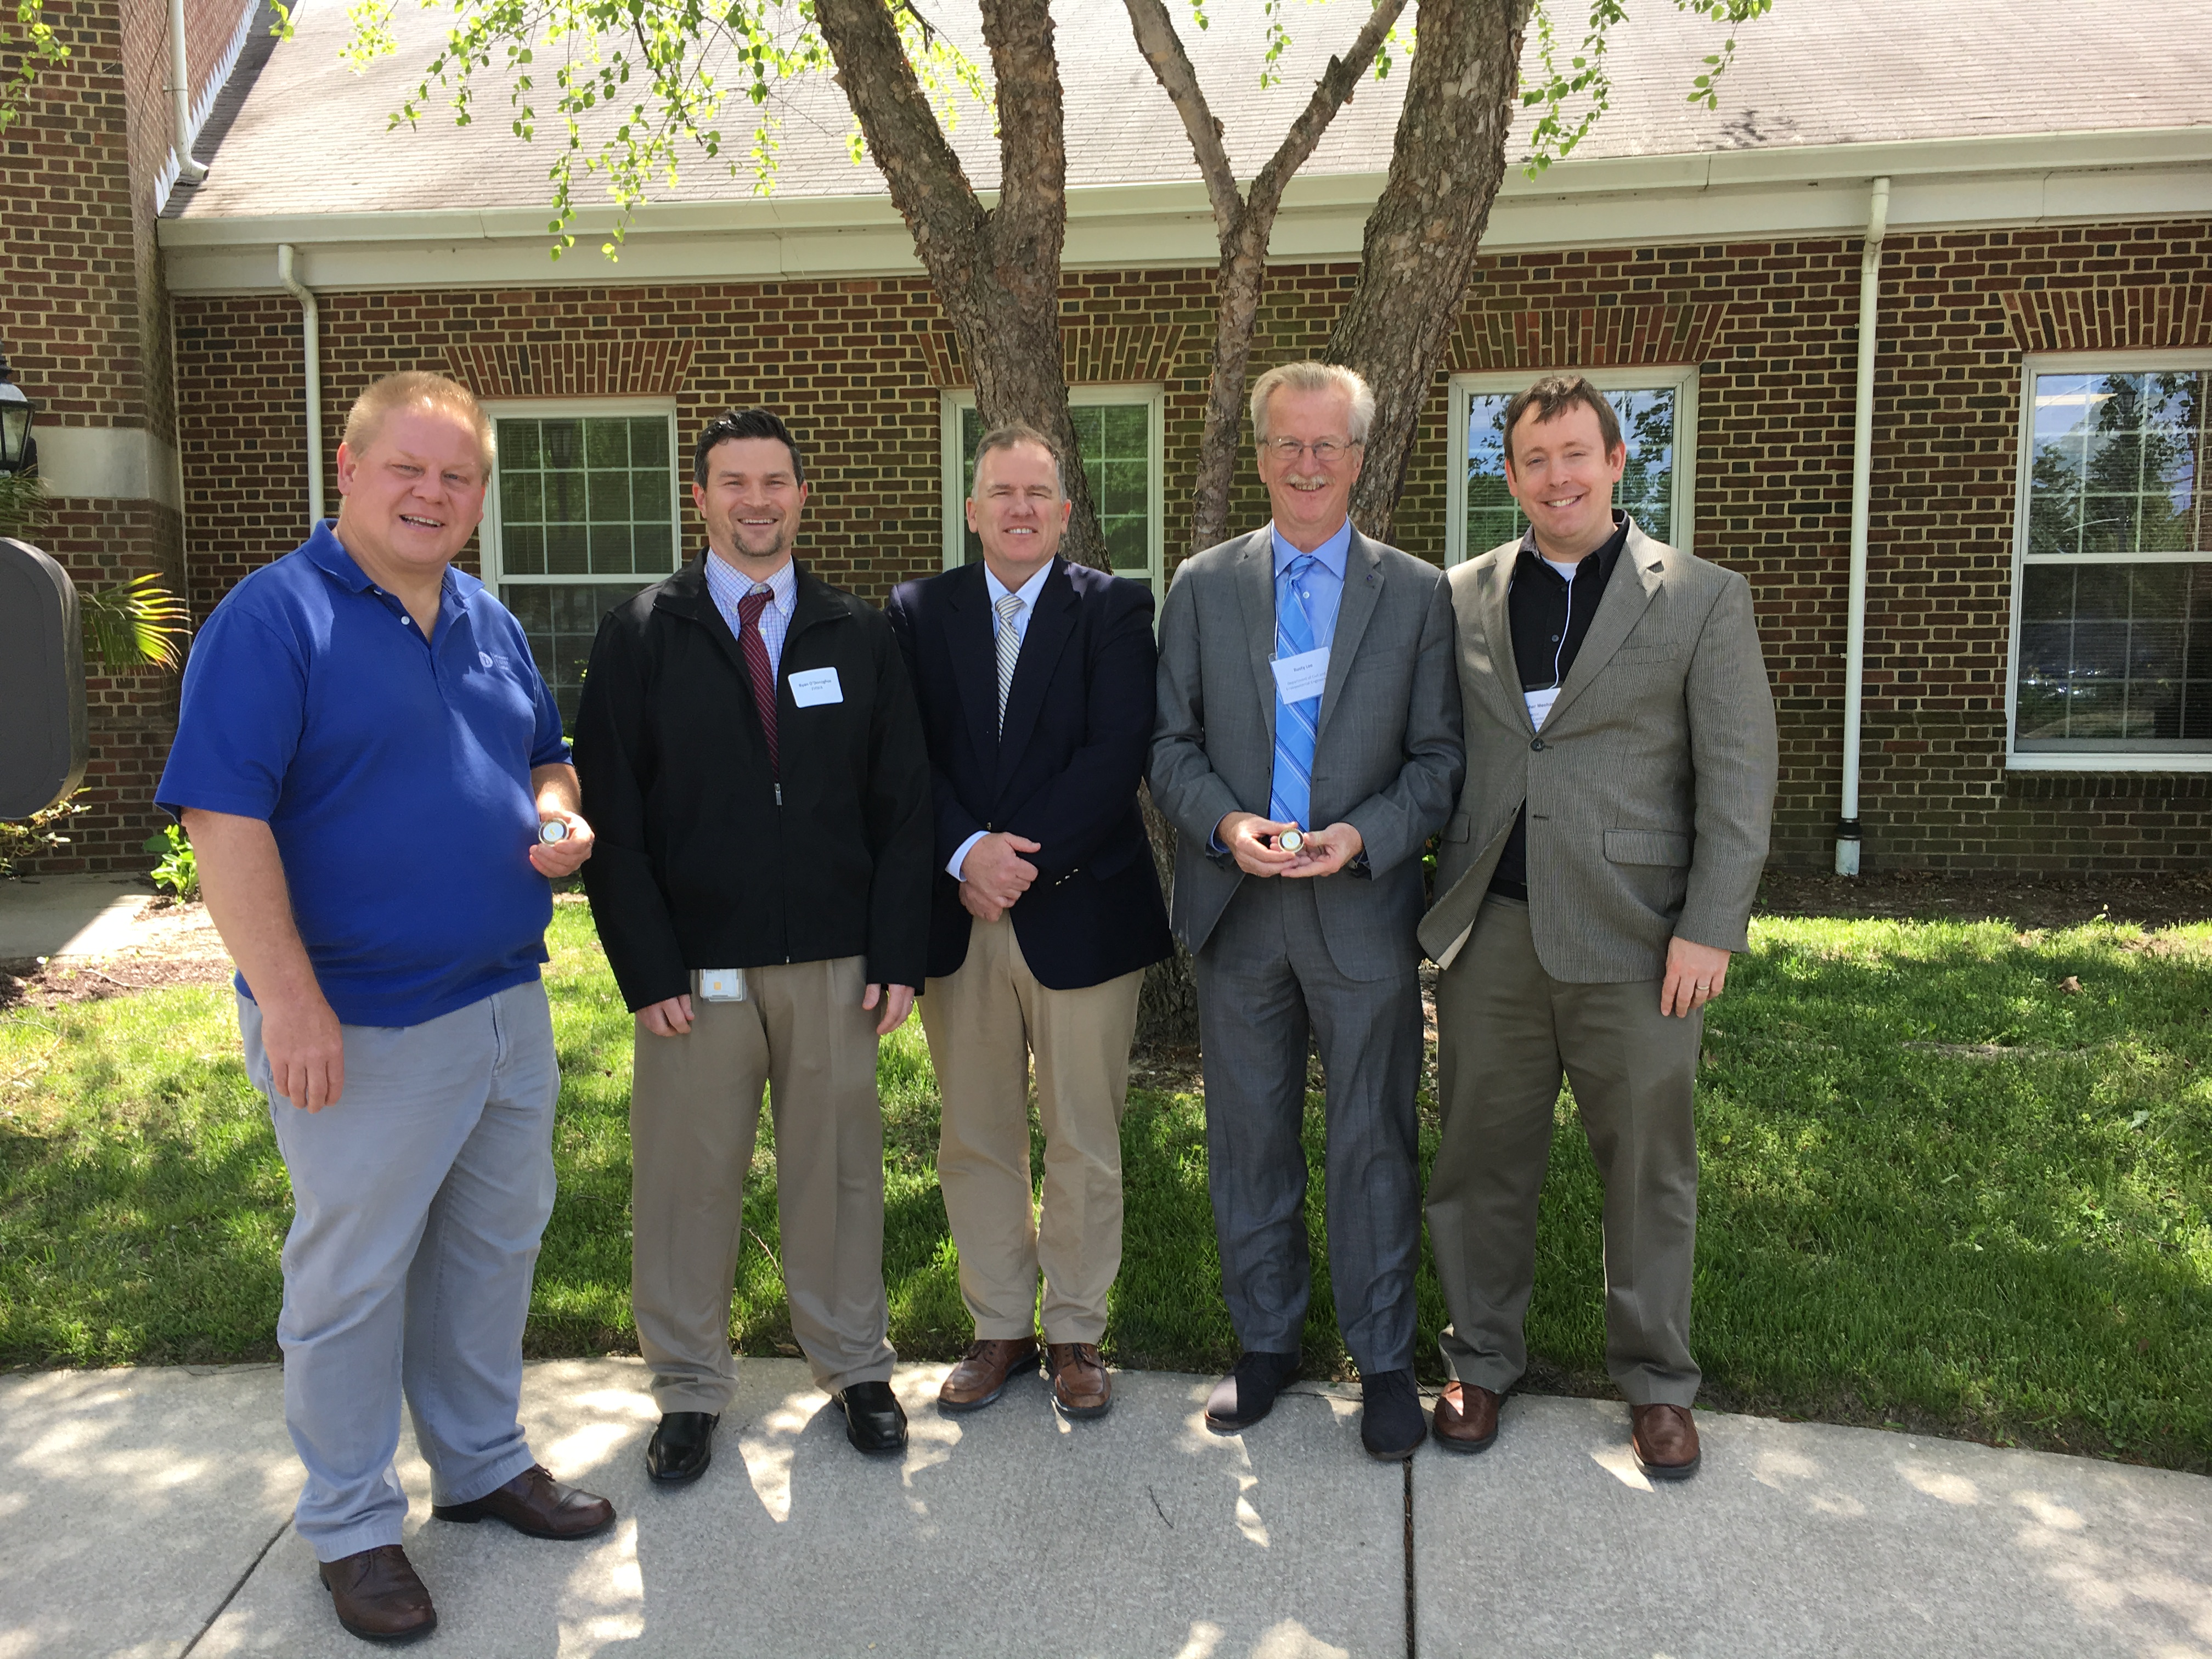 Delaware Center for Transportation Engineers Recognized for Work to Improve Traffic Safety